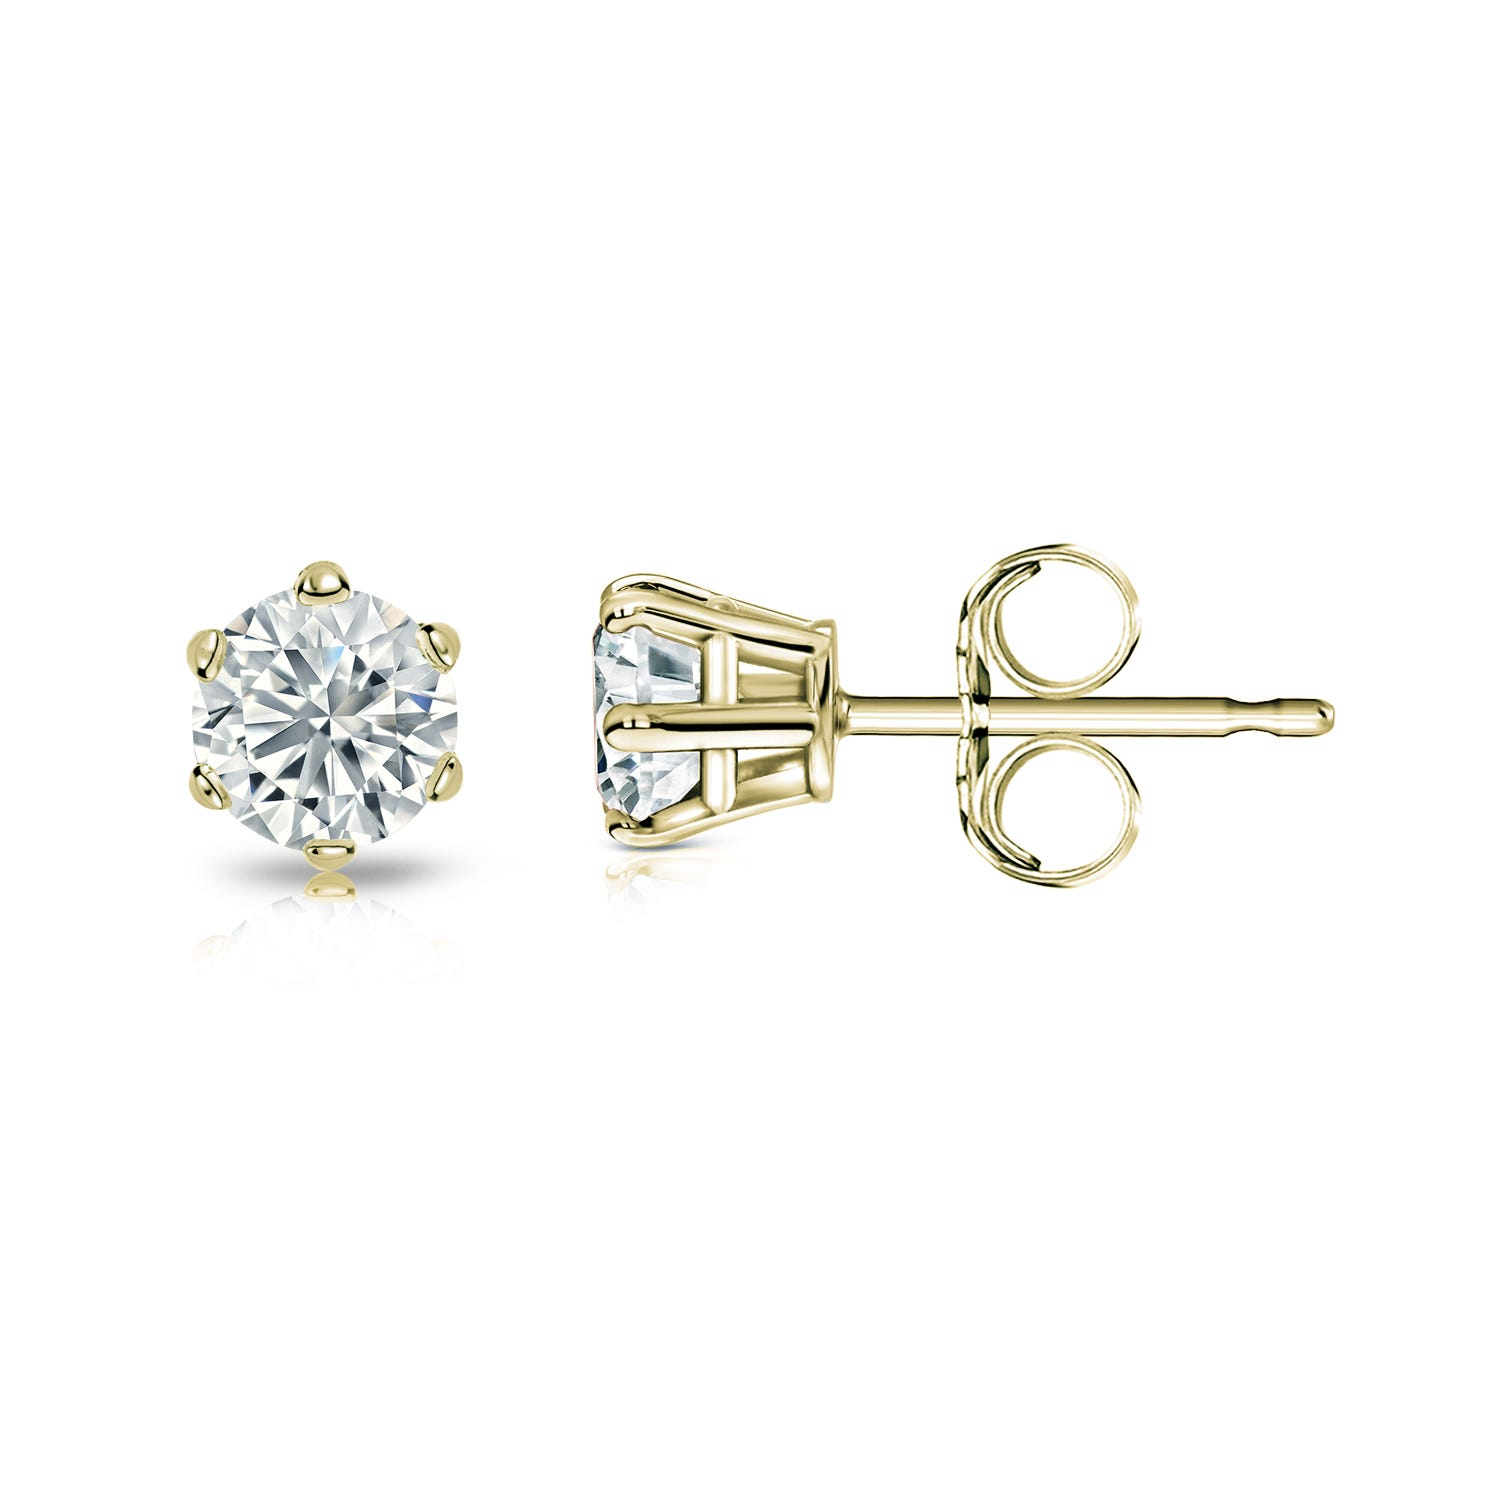 Round Diamond 1/7ctw. (IJ-I1) Solitaire Stud 6-Prong Earrings in 14K Yellow Gold